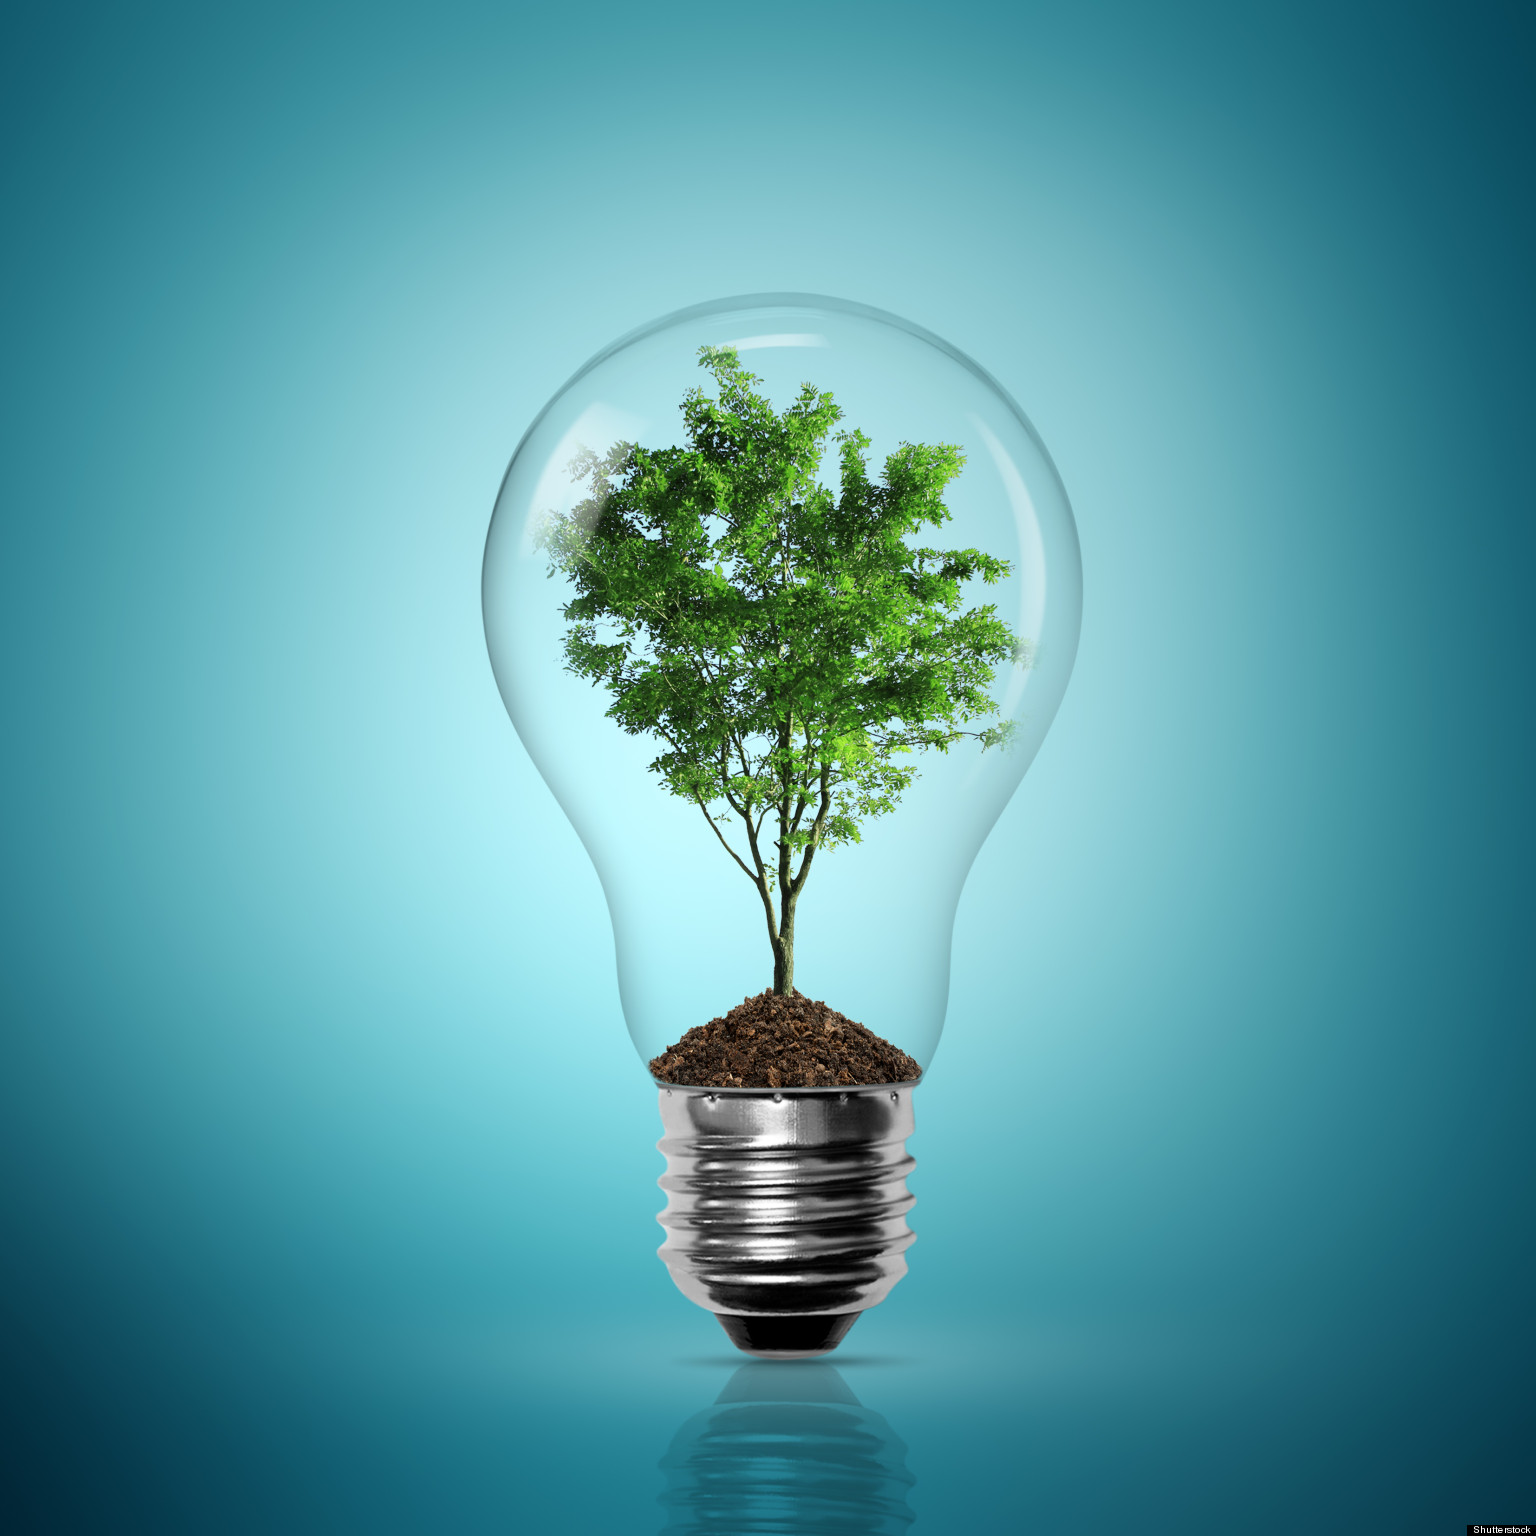 Image of a lightbulb with a tree growing inside it